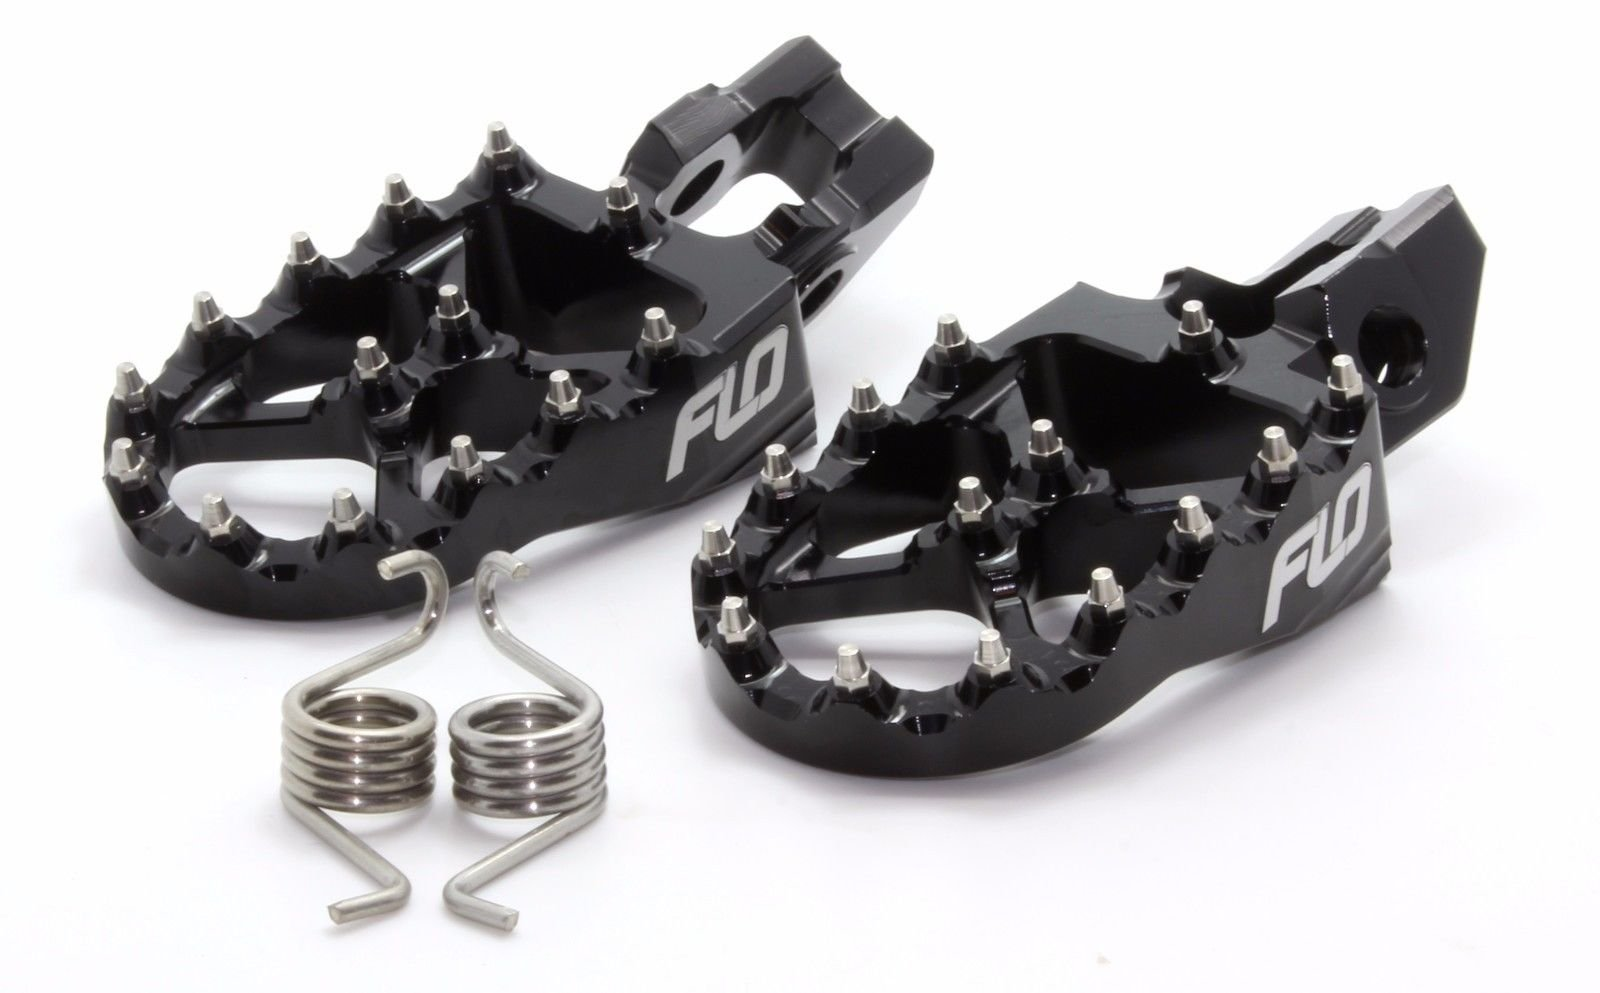 Flo Motorsports Foot Pegs for KTM 2016 2017125sx/150sx/250-450sx-f and Xc-f Black Fpeg-795-2blk